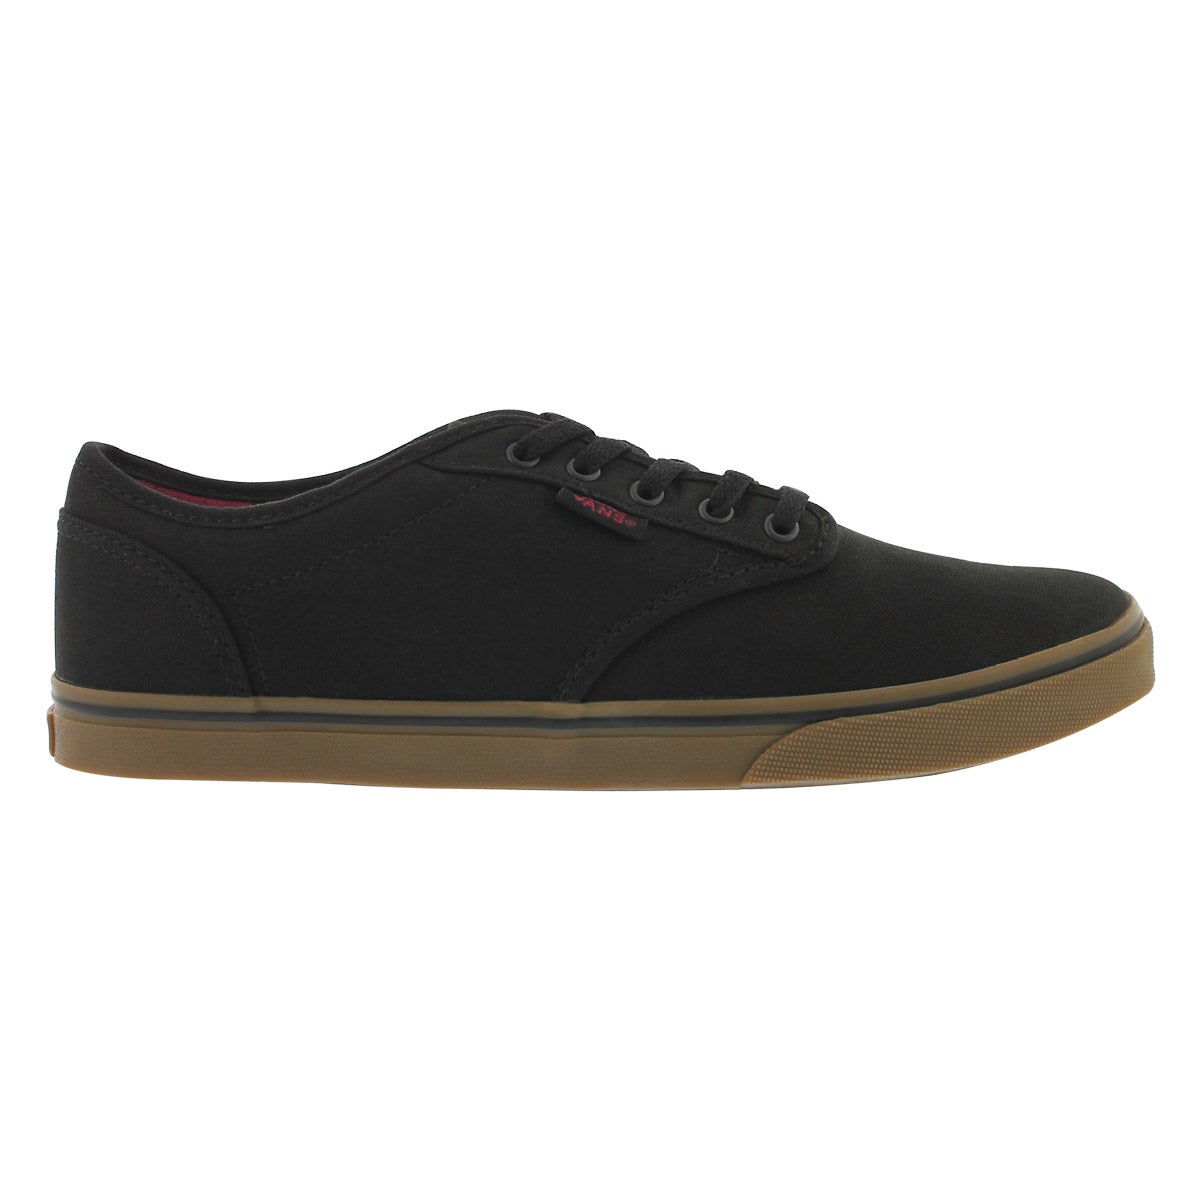 Lds Atwood Low blk/gum lace up sneaker